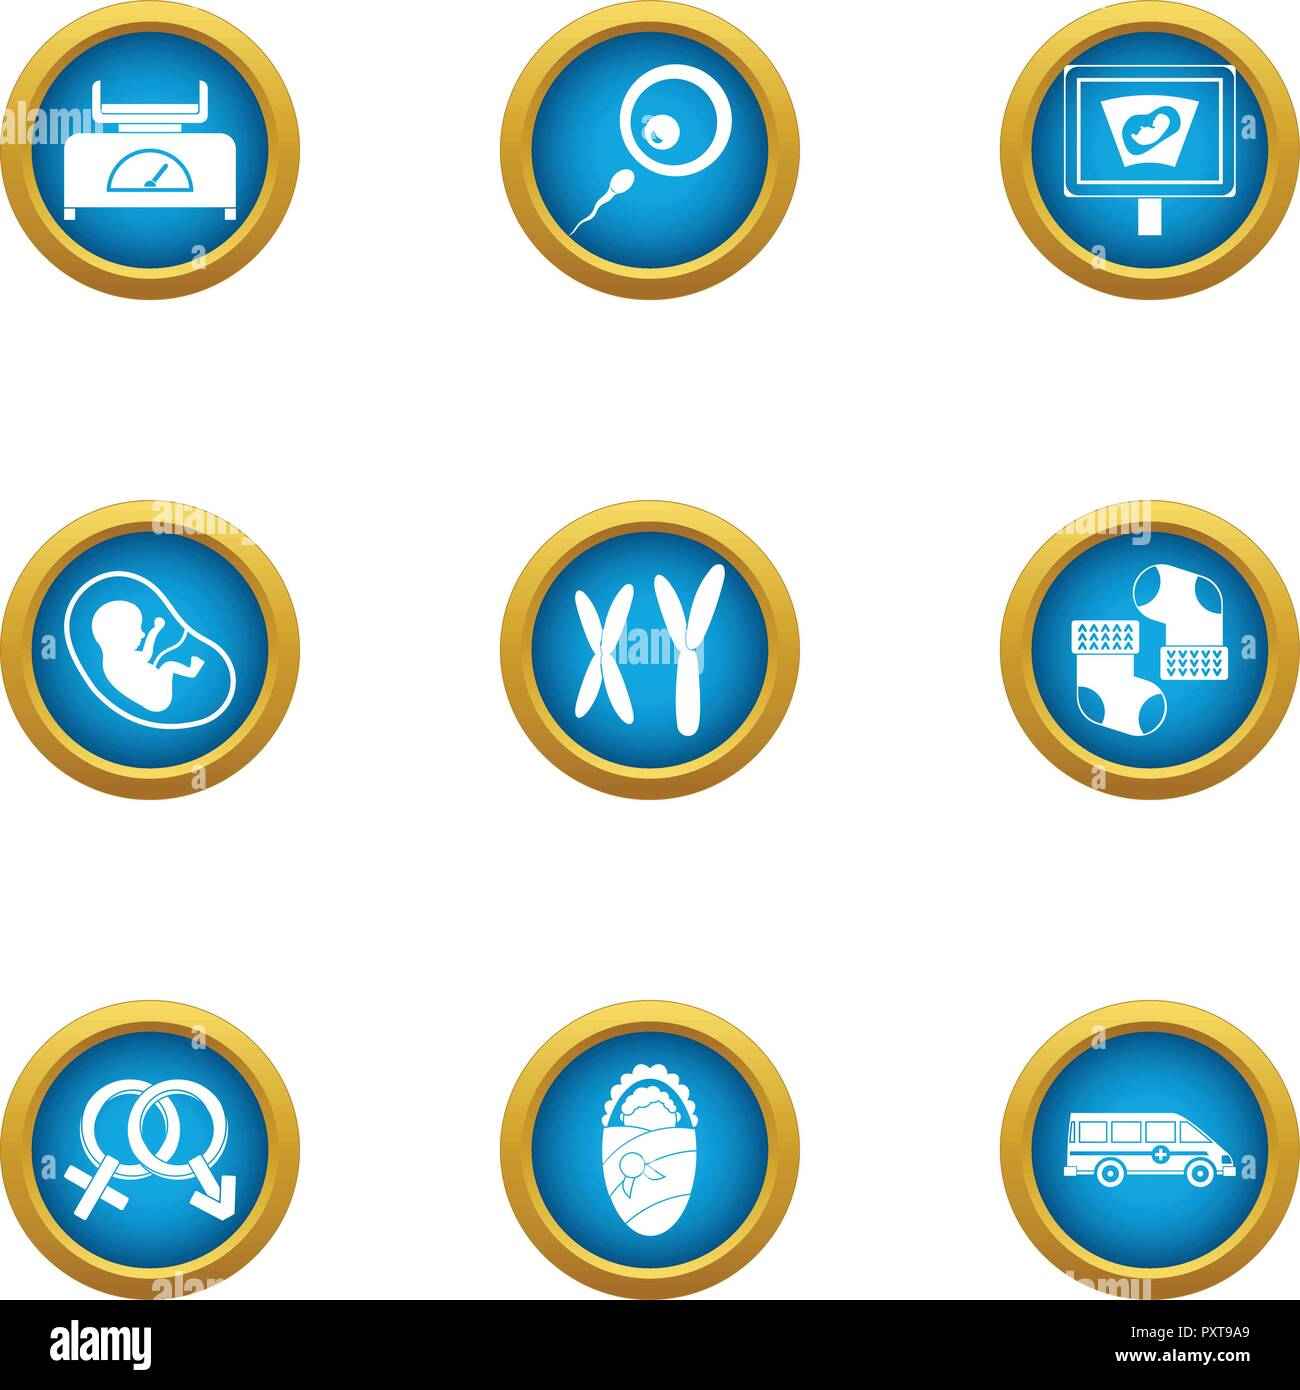 Somatic cell icons set, flat style - Stock Image